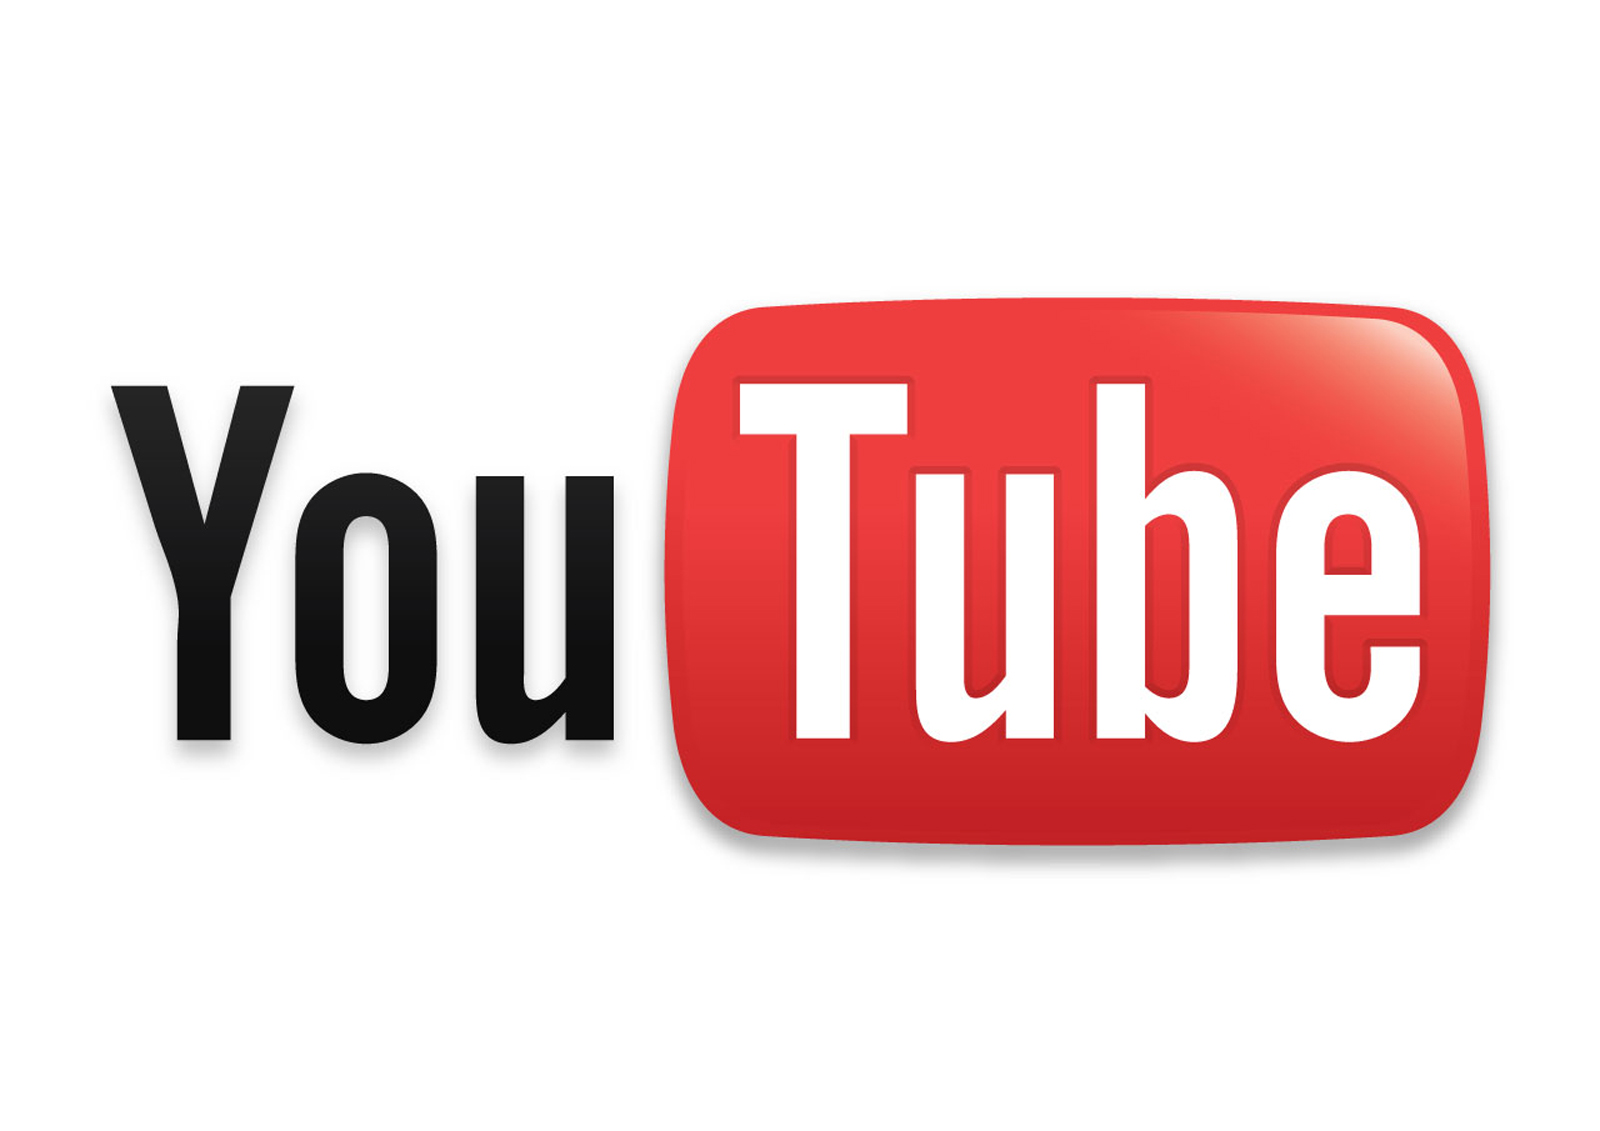 Youtube HD Logo Wallpapers Download Wallpapers in HD for your 1600x1131